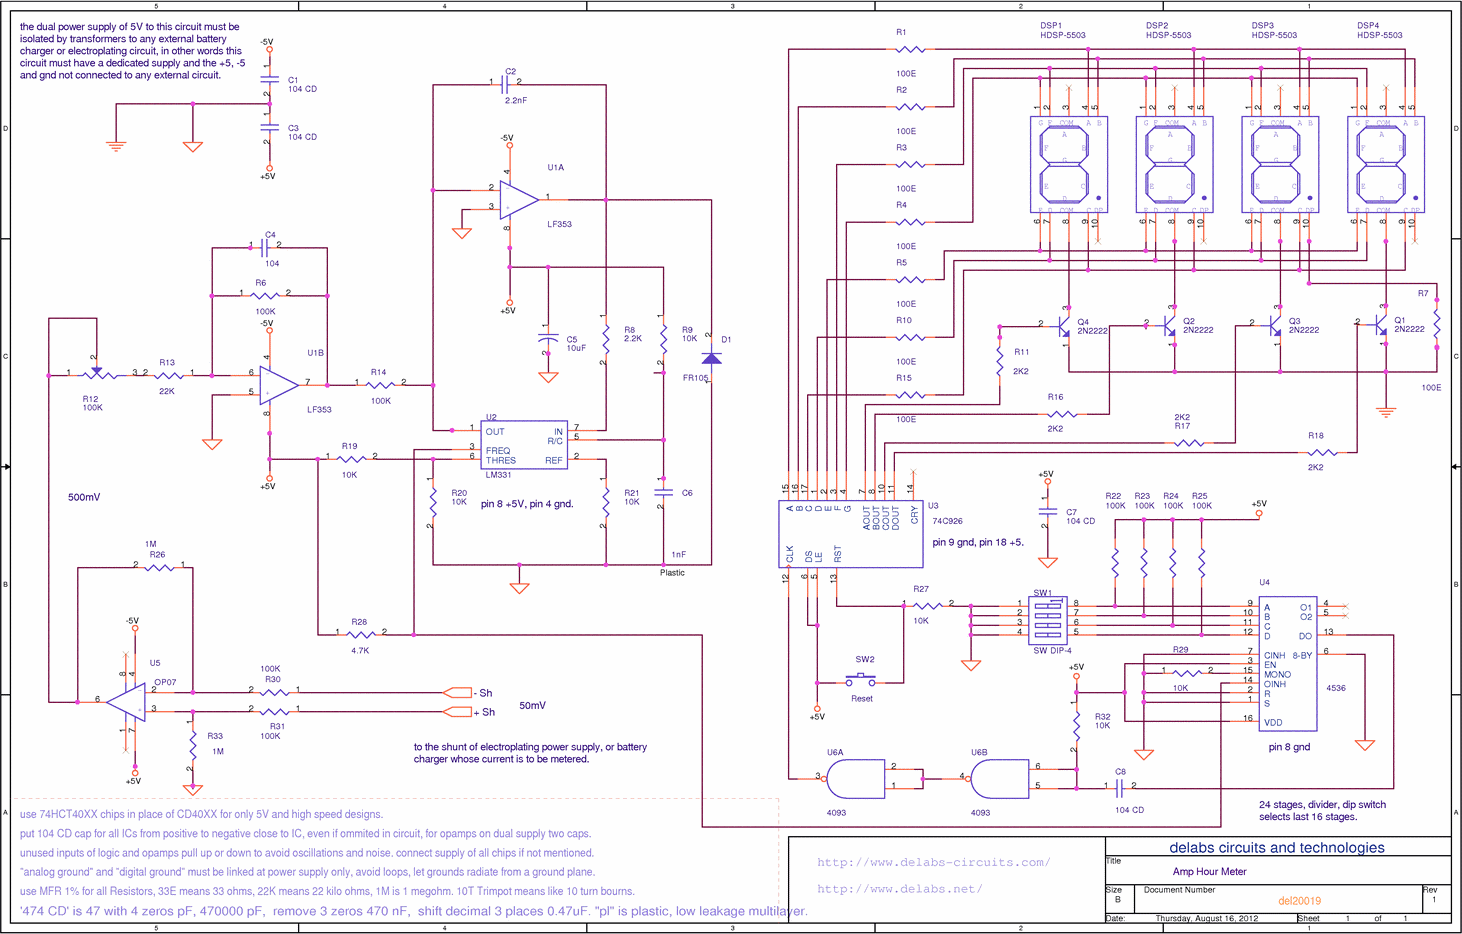 Megazine in addition Nfrsblog furthermore Bcd To 7 Segment Display Truth Table Wiring Diagrams moreover 7 Segment Led Driver Avr together with Seven Segment Displays. on using seven segment displays part 2